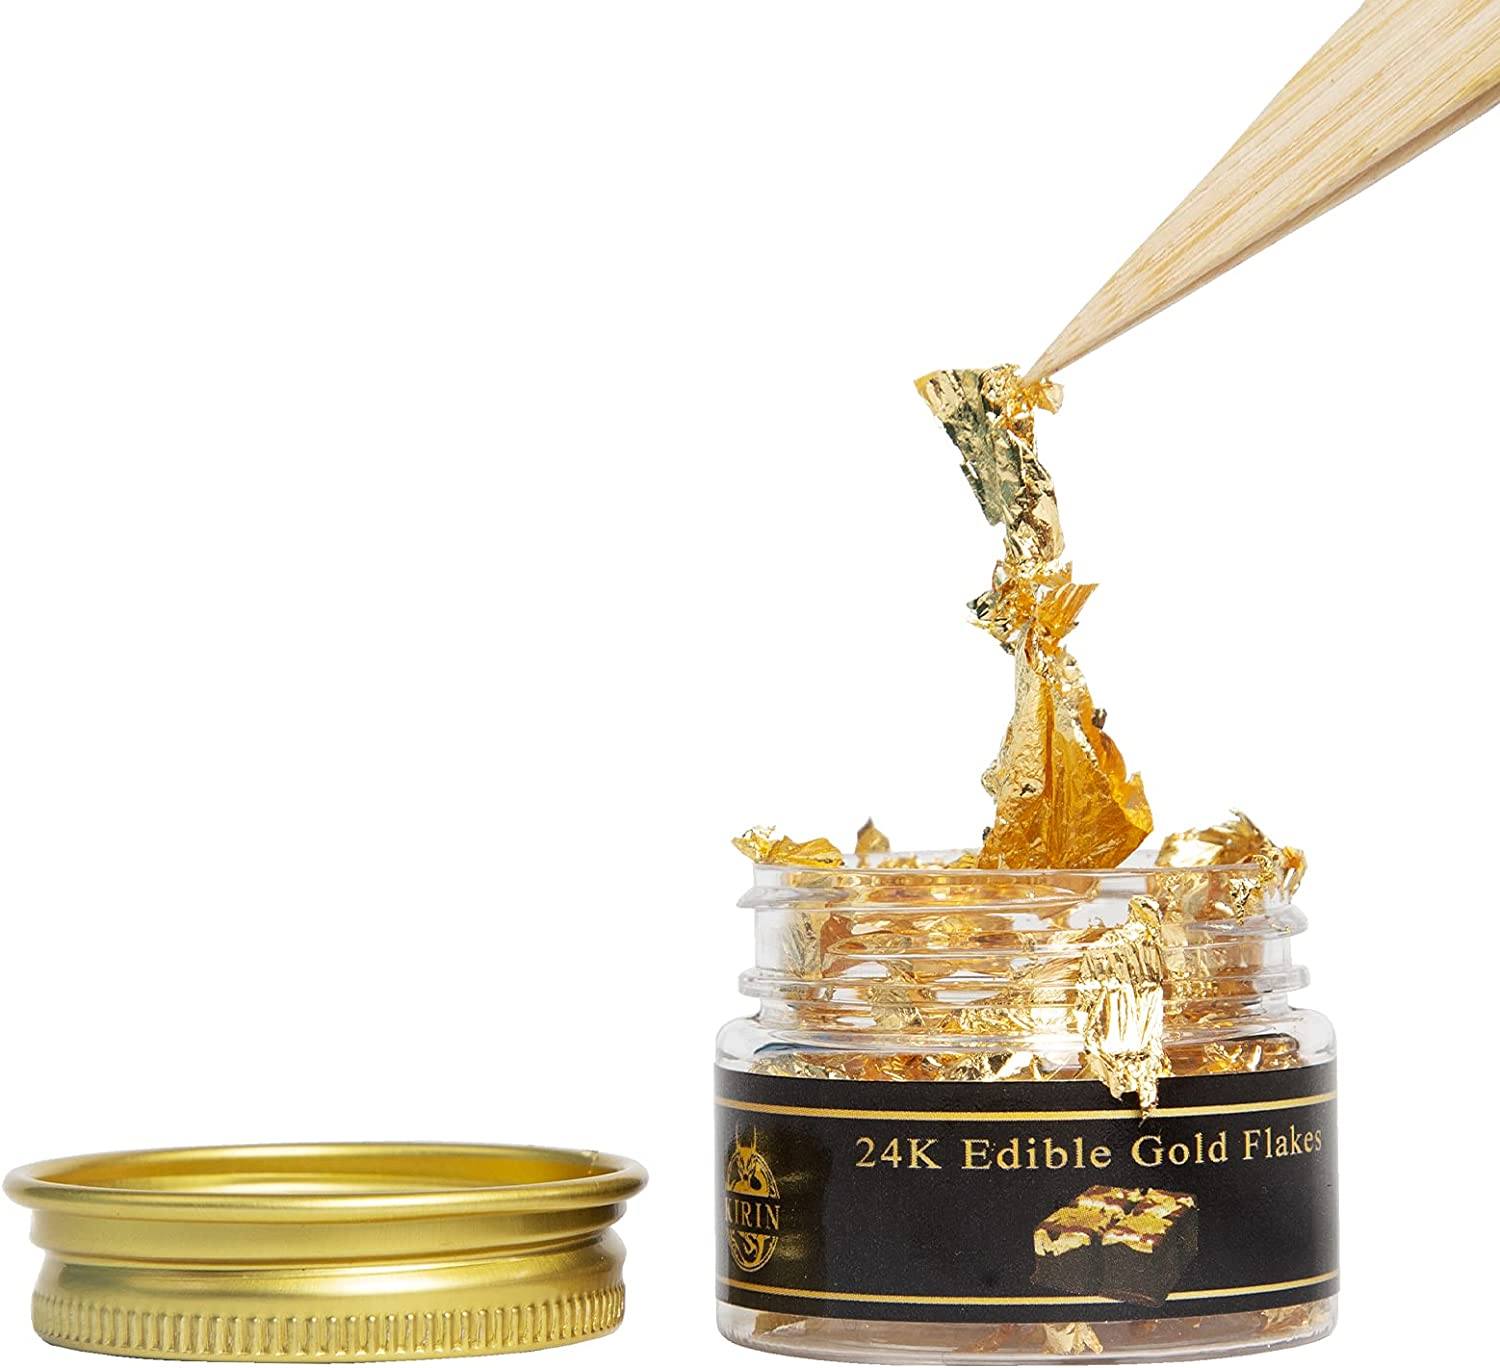 Edible Genuine Gold Leaf Flakes, 24K 25mg Kirin Gold Flakes Decorative for Cakes Crafts Painting Furniture Nails Decoration